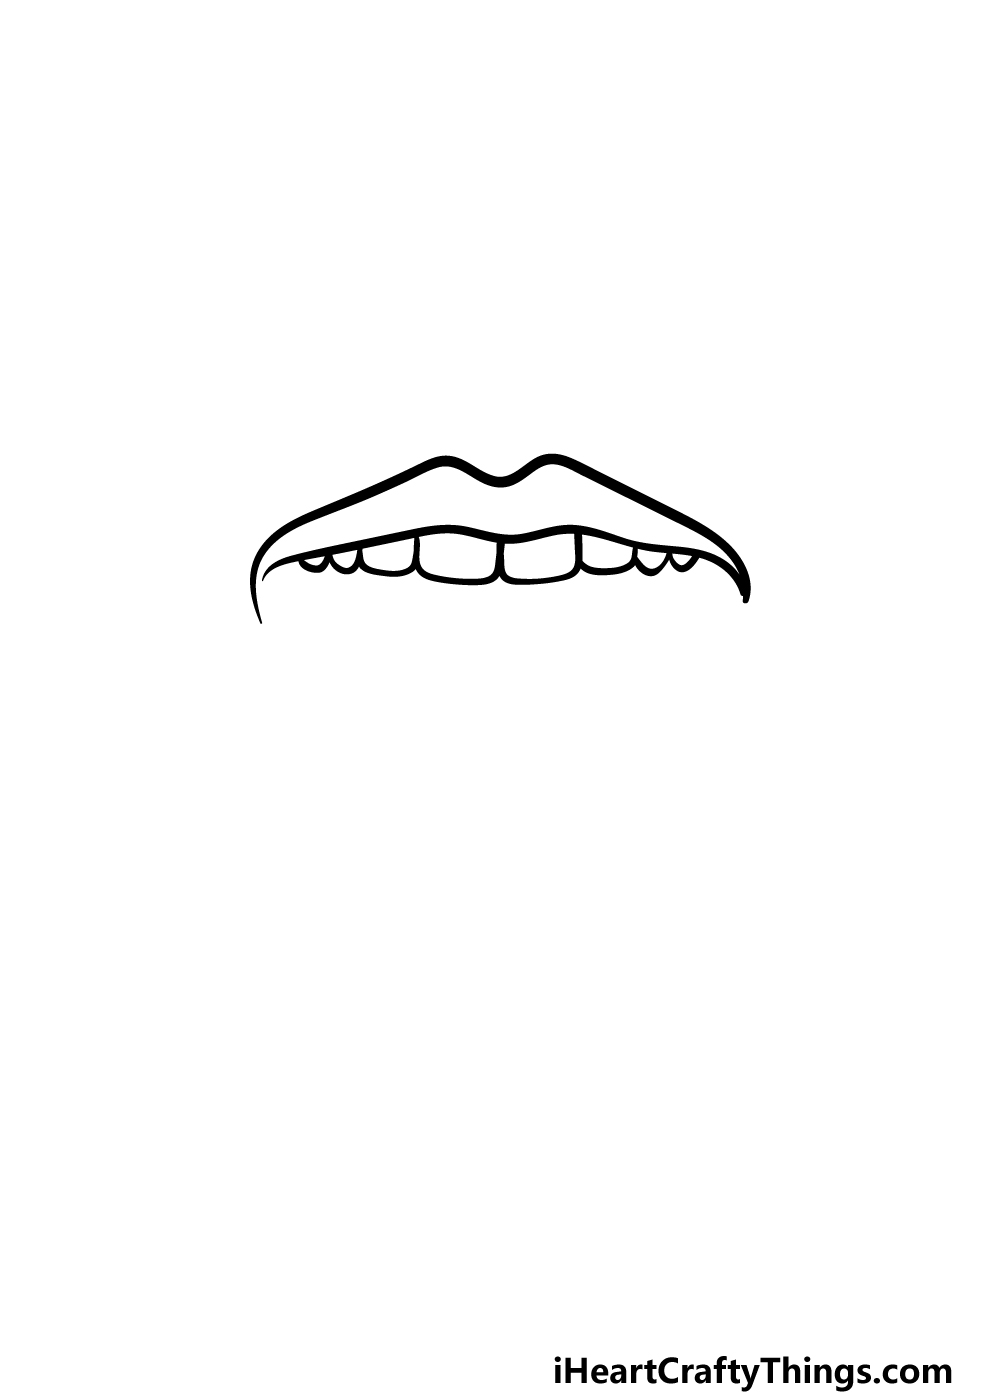 how to draw a tongue step 2